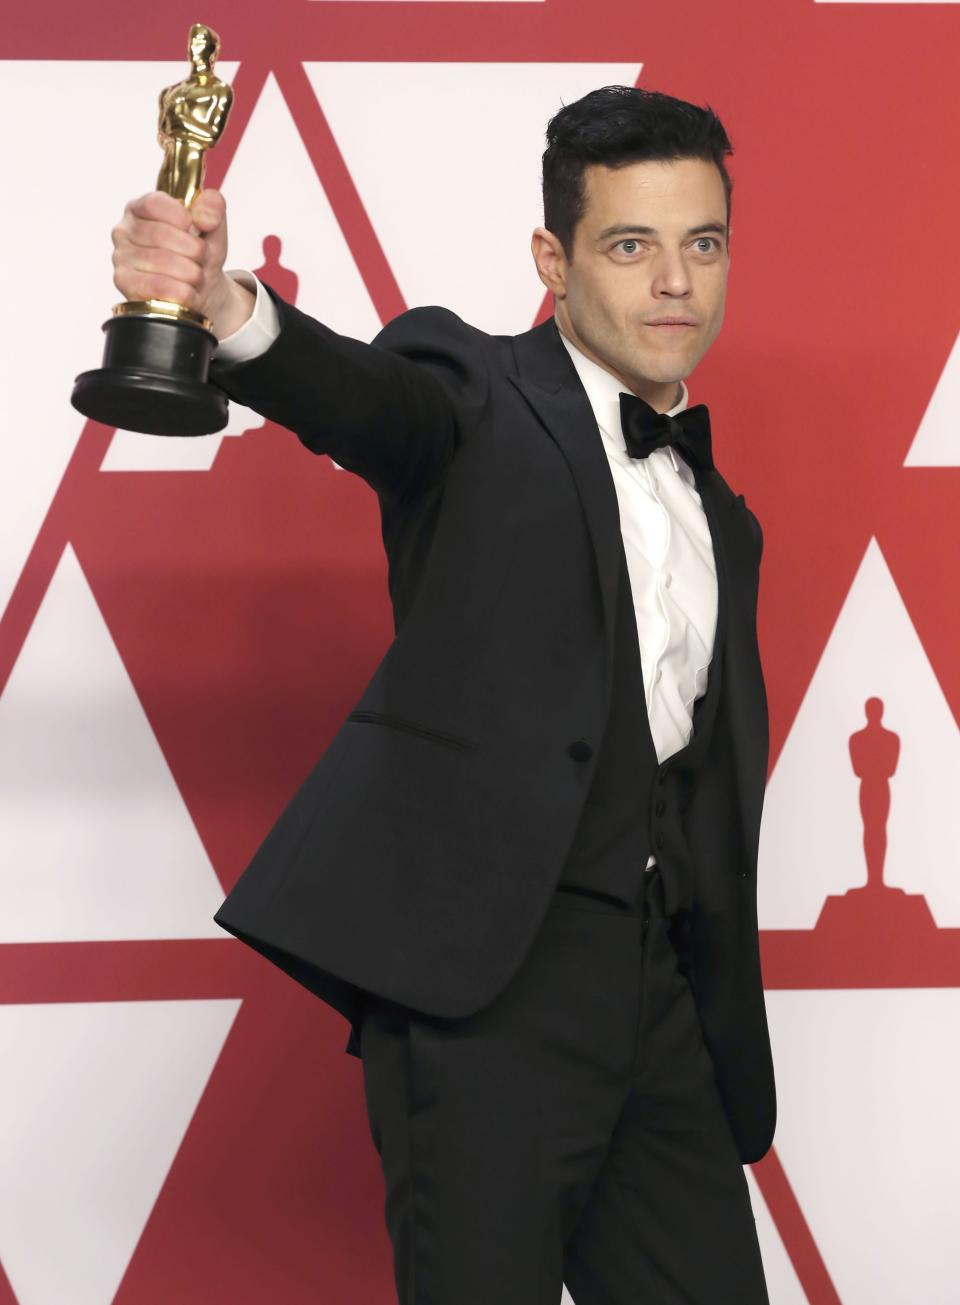 91st Academy Awards – Oscars Photo Room – Hollywood, Los Angeles, California, U.S., February 24, 2019. Best Actor Rami Malek poses with his award backstage, REUTERS/Mike Segar